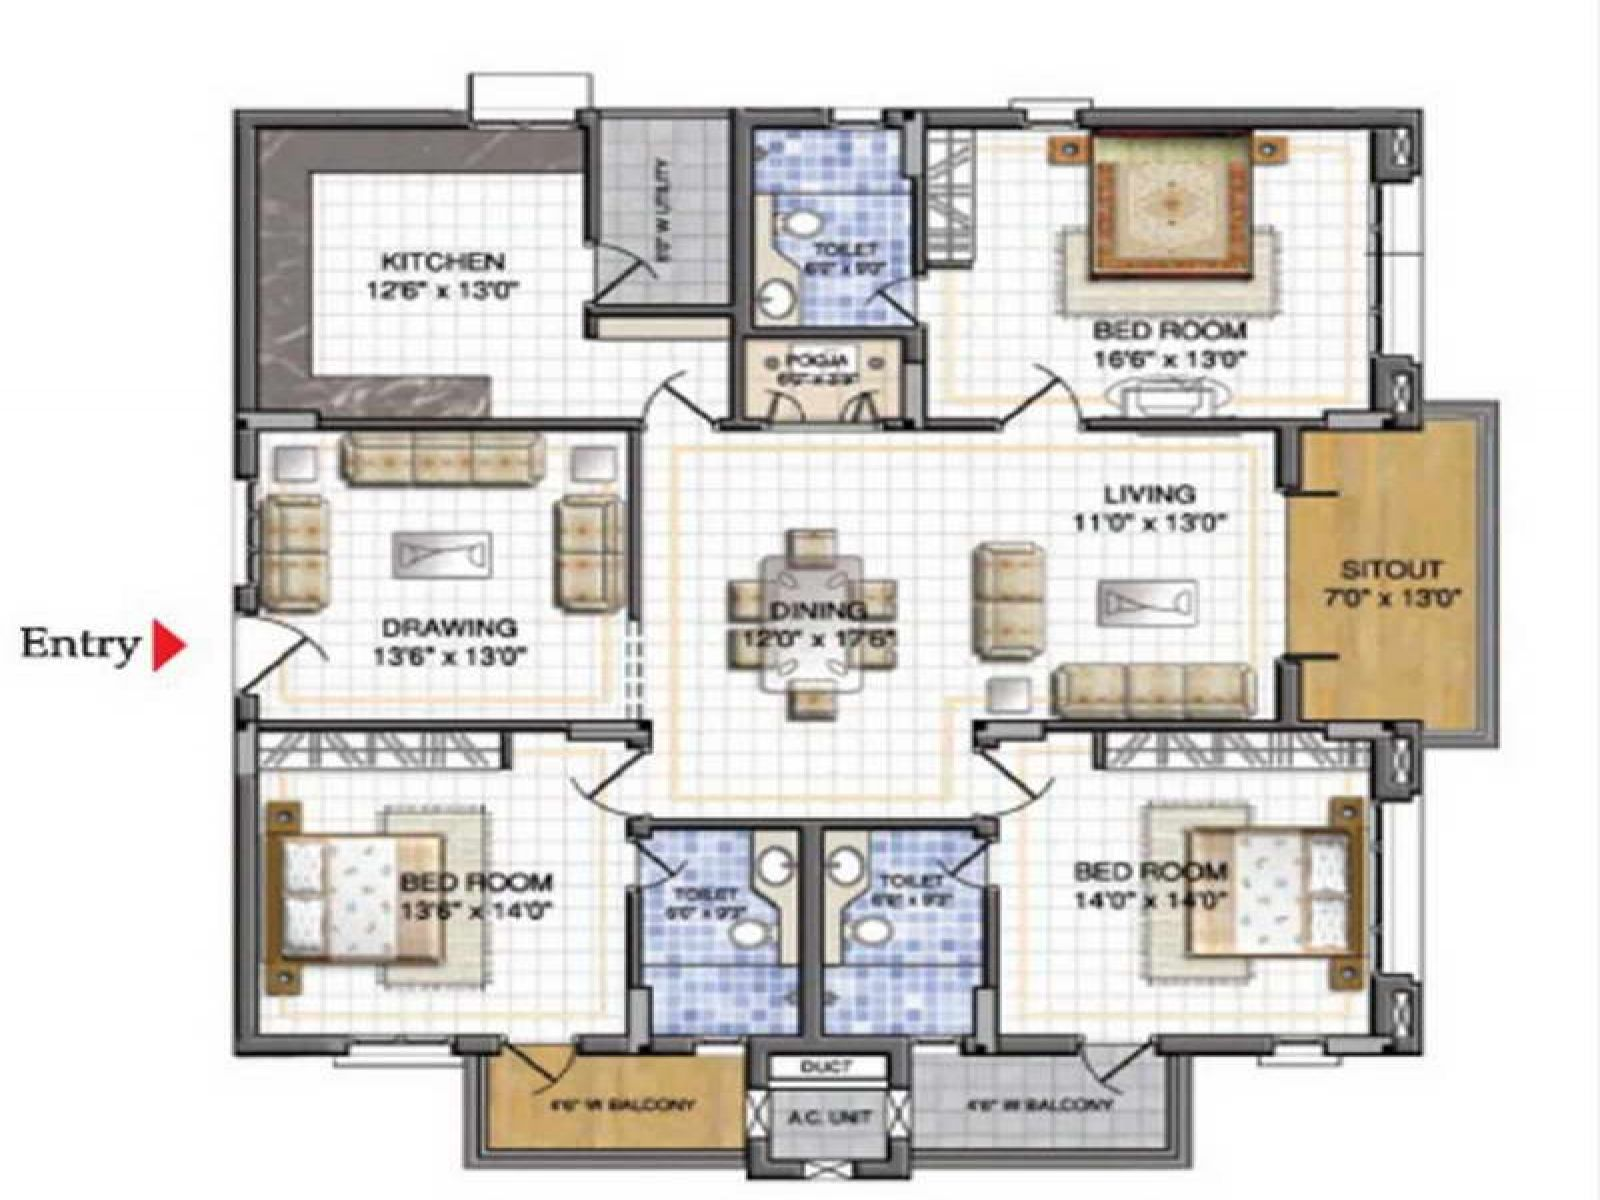 Home Plan Design Online Plans Classy Plan Design Software Windows Floor Free Online Terms Copyright . Review